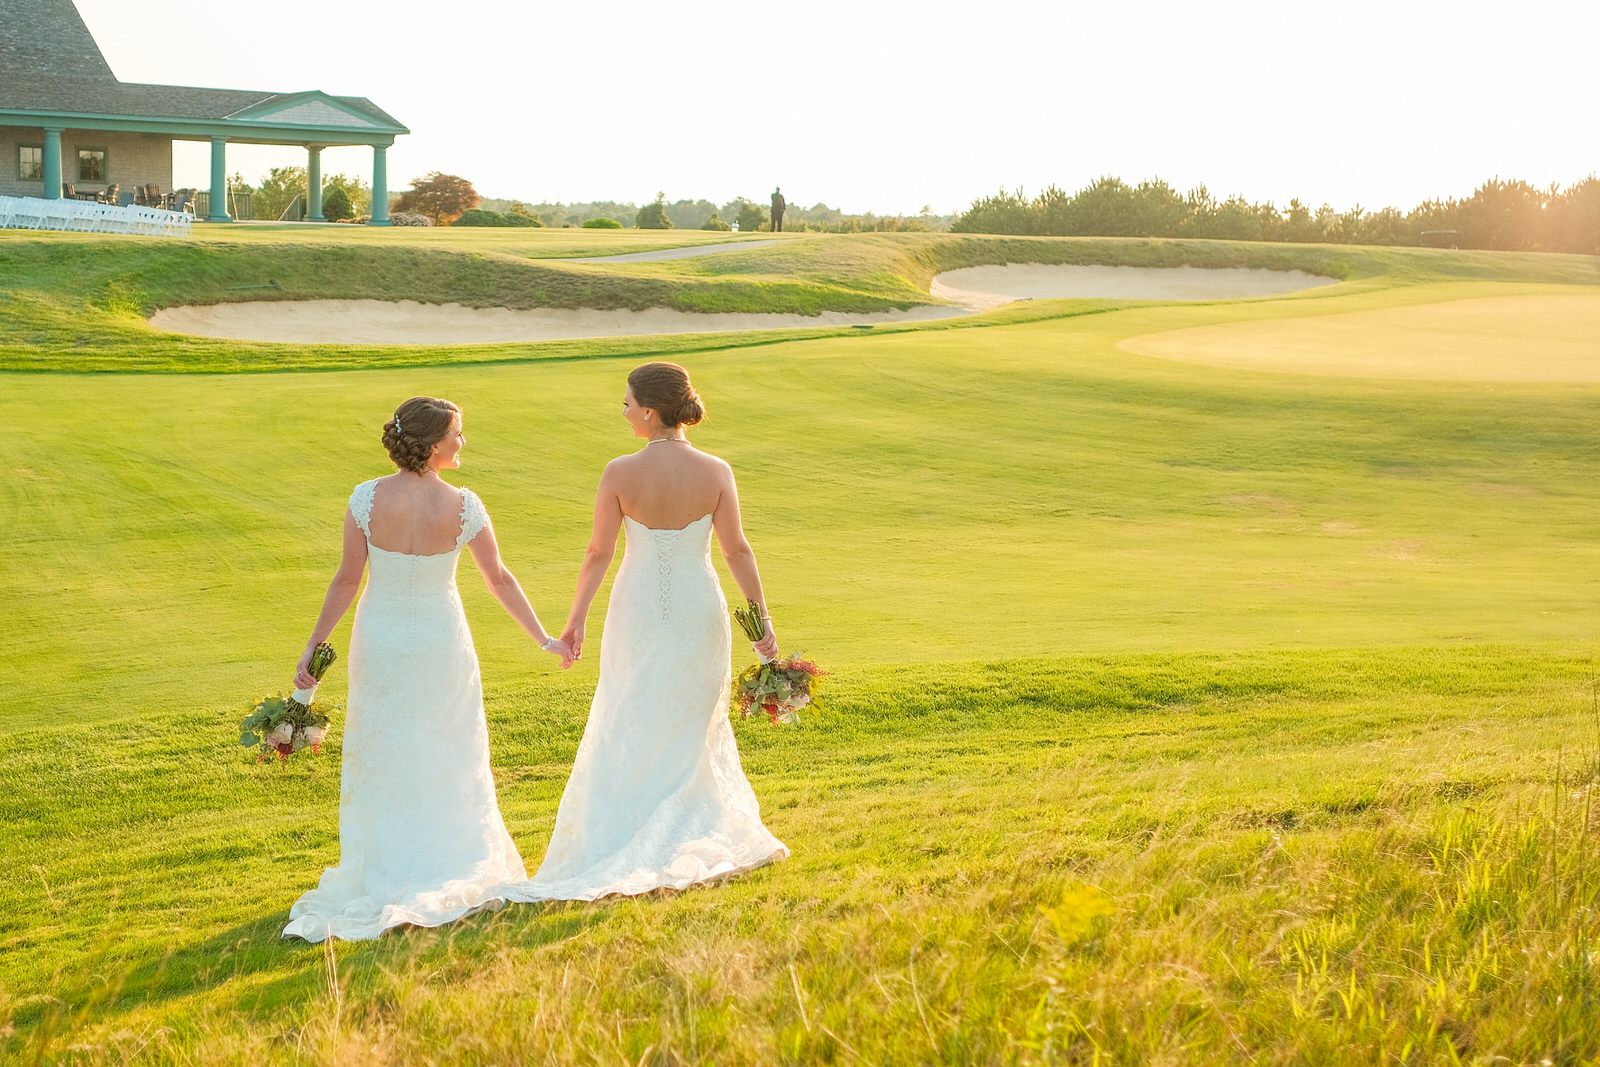 waverly-oaks-golf-club-wedding-photography-66.jpg